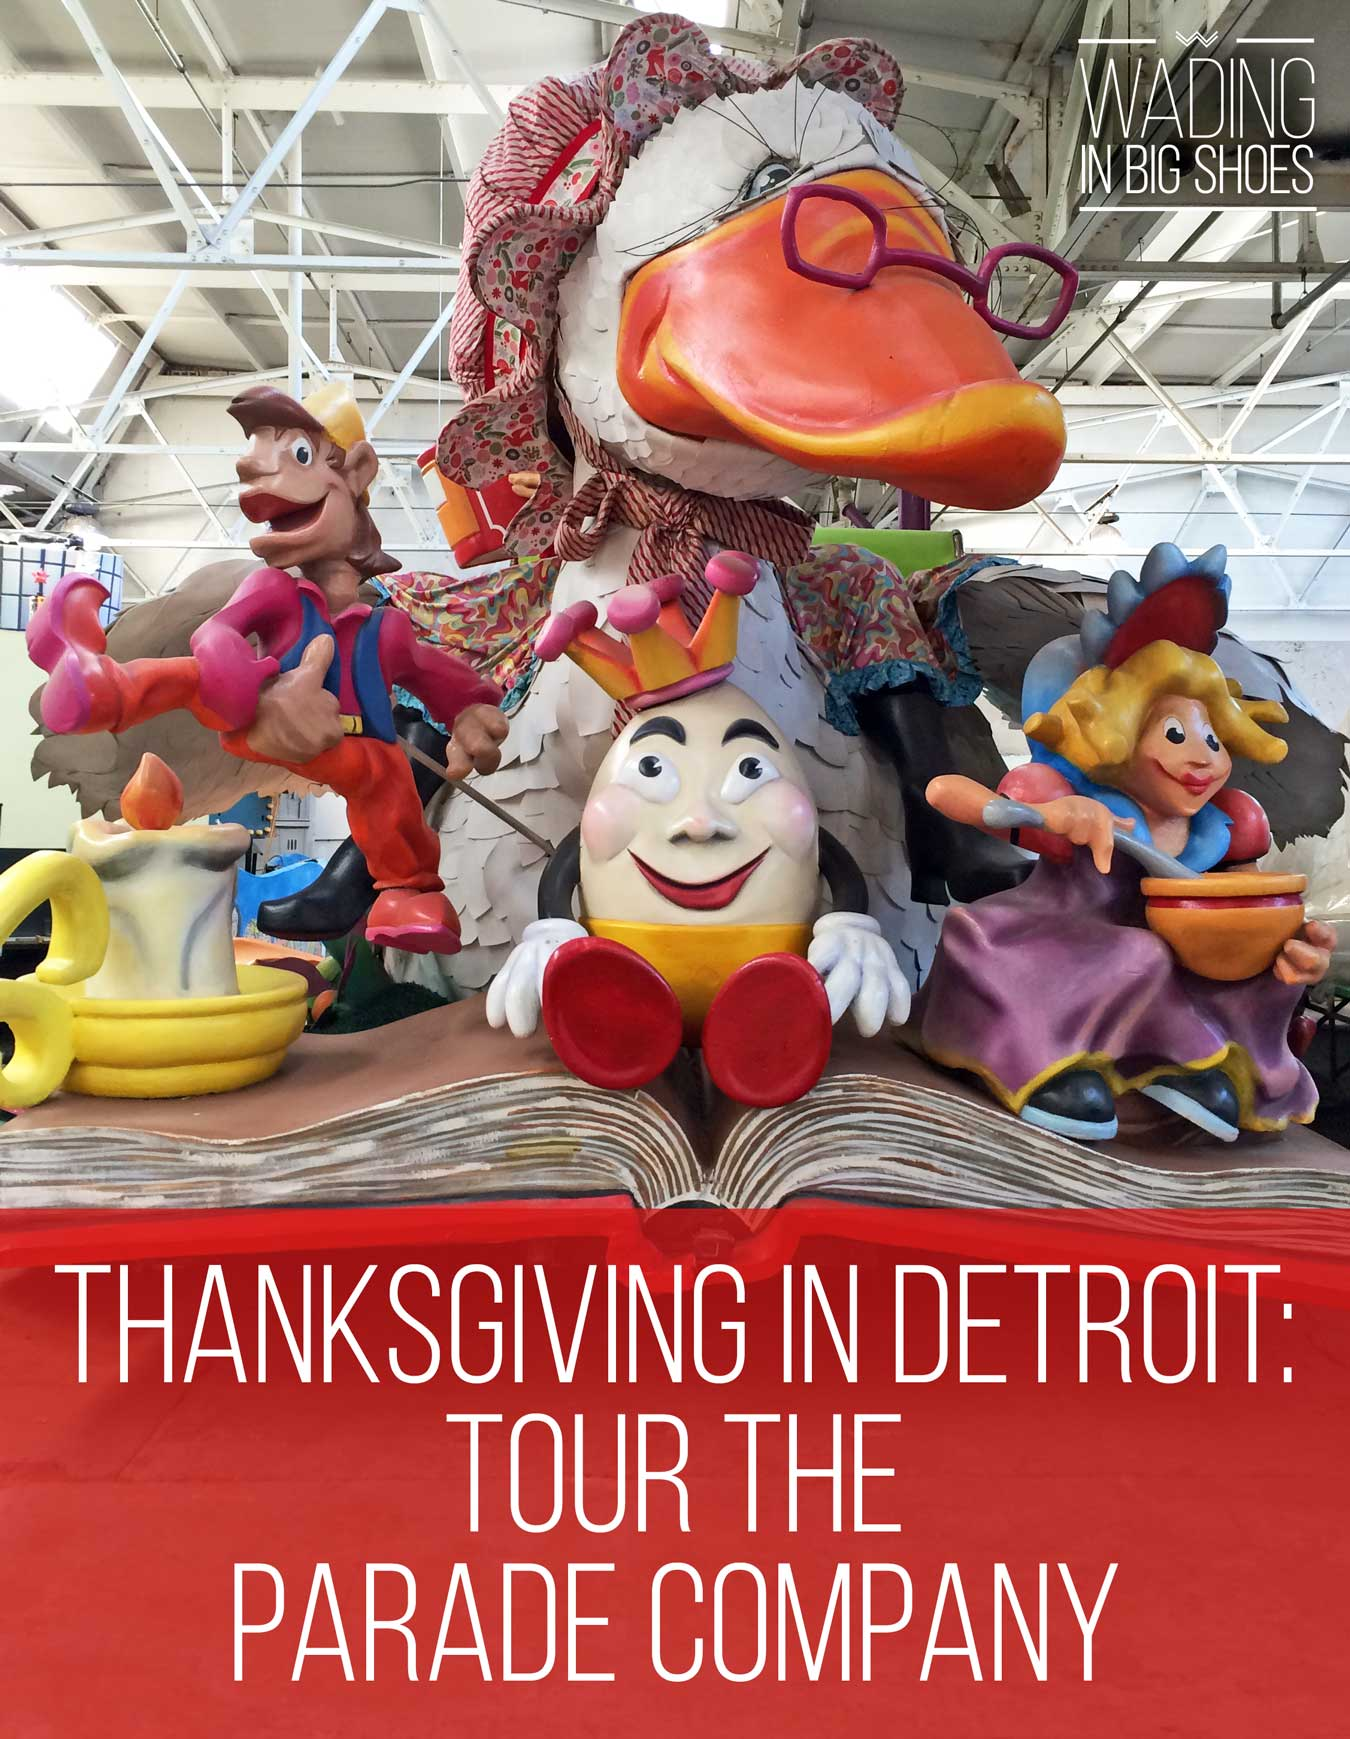 Wading In Big Shoes - Thanksgiving In Detroit: Tour The Parade Company